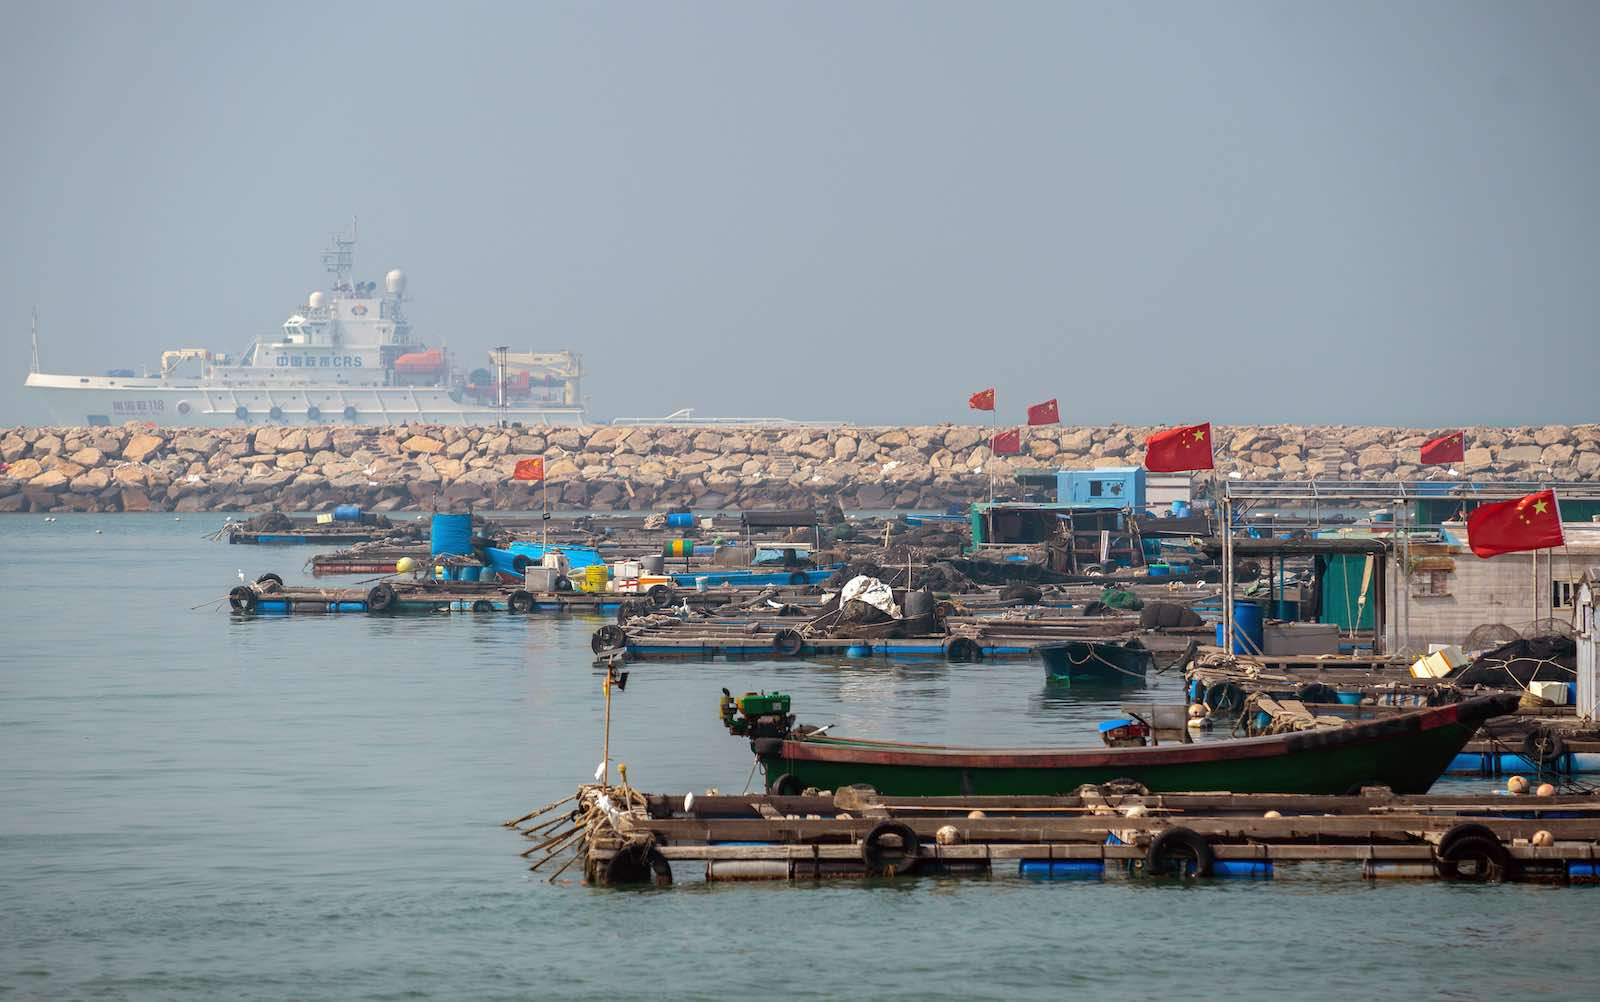 Chinese fishing vessels in port before venturing into the South China Sea (Artyom Ivanov/TASS via Getty)